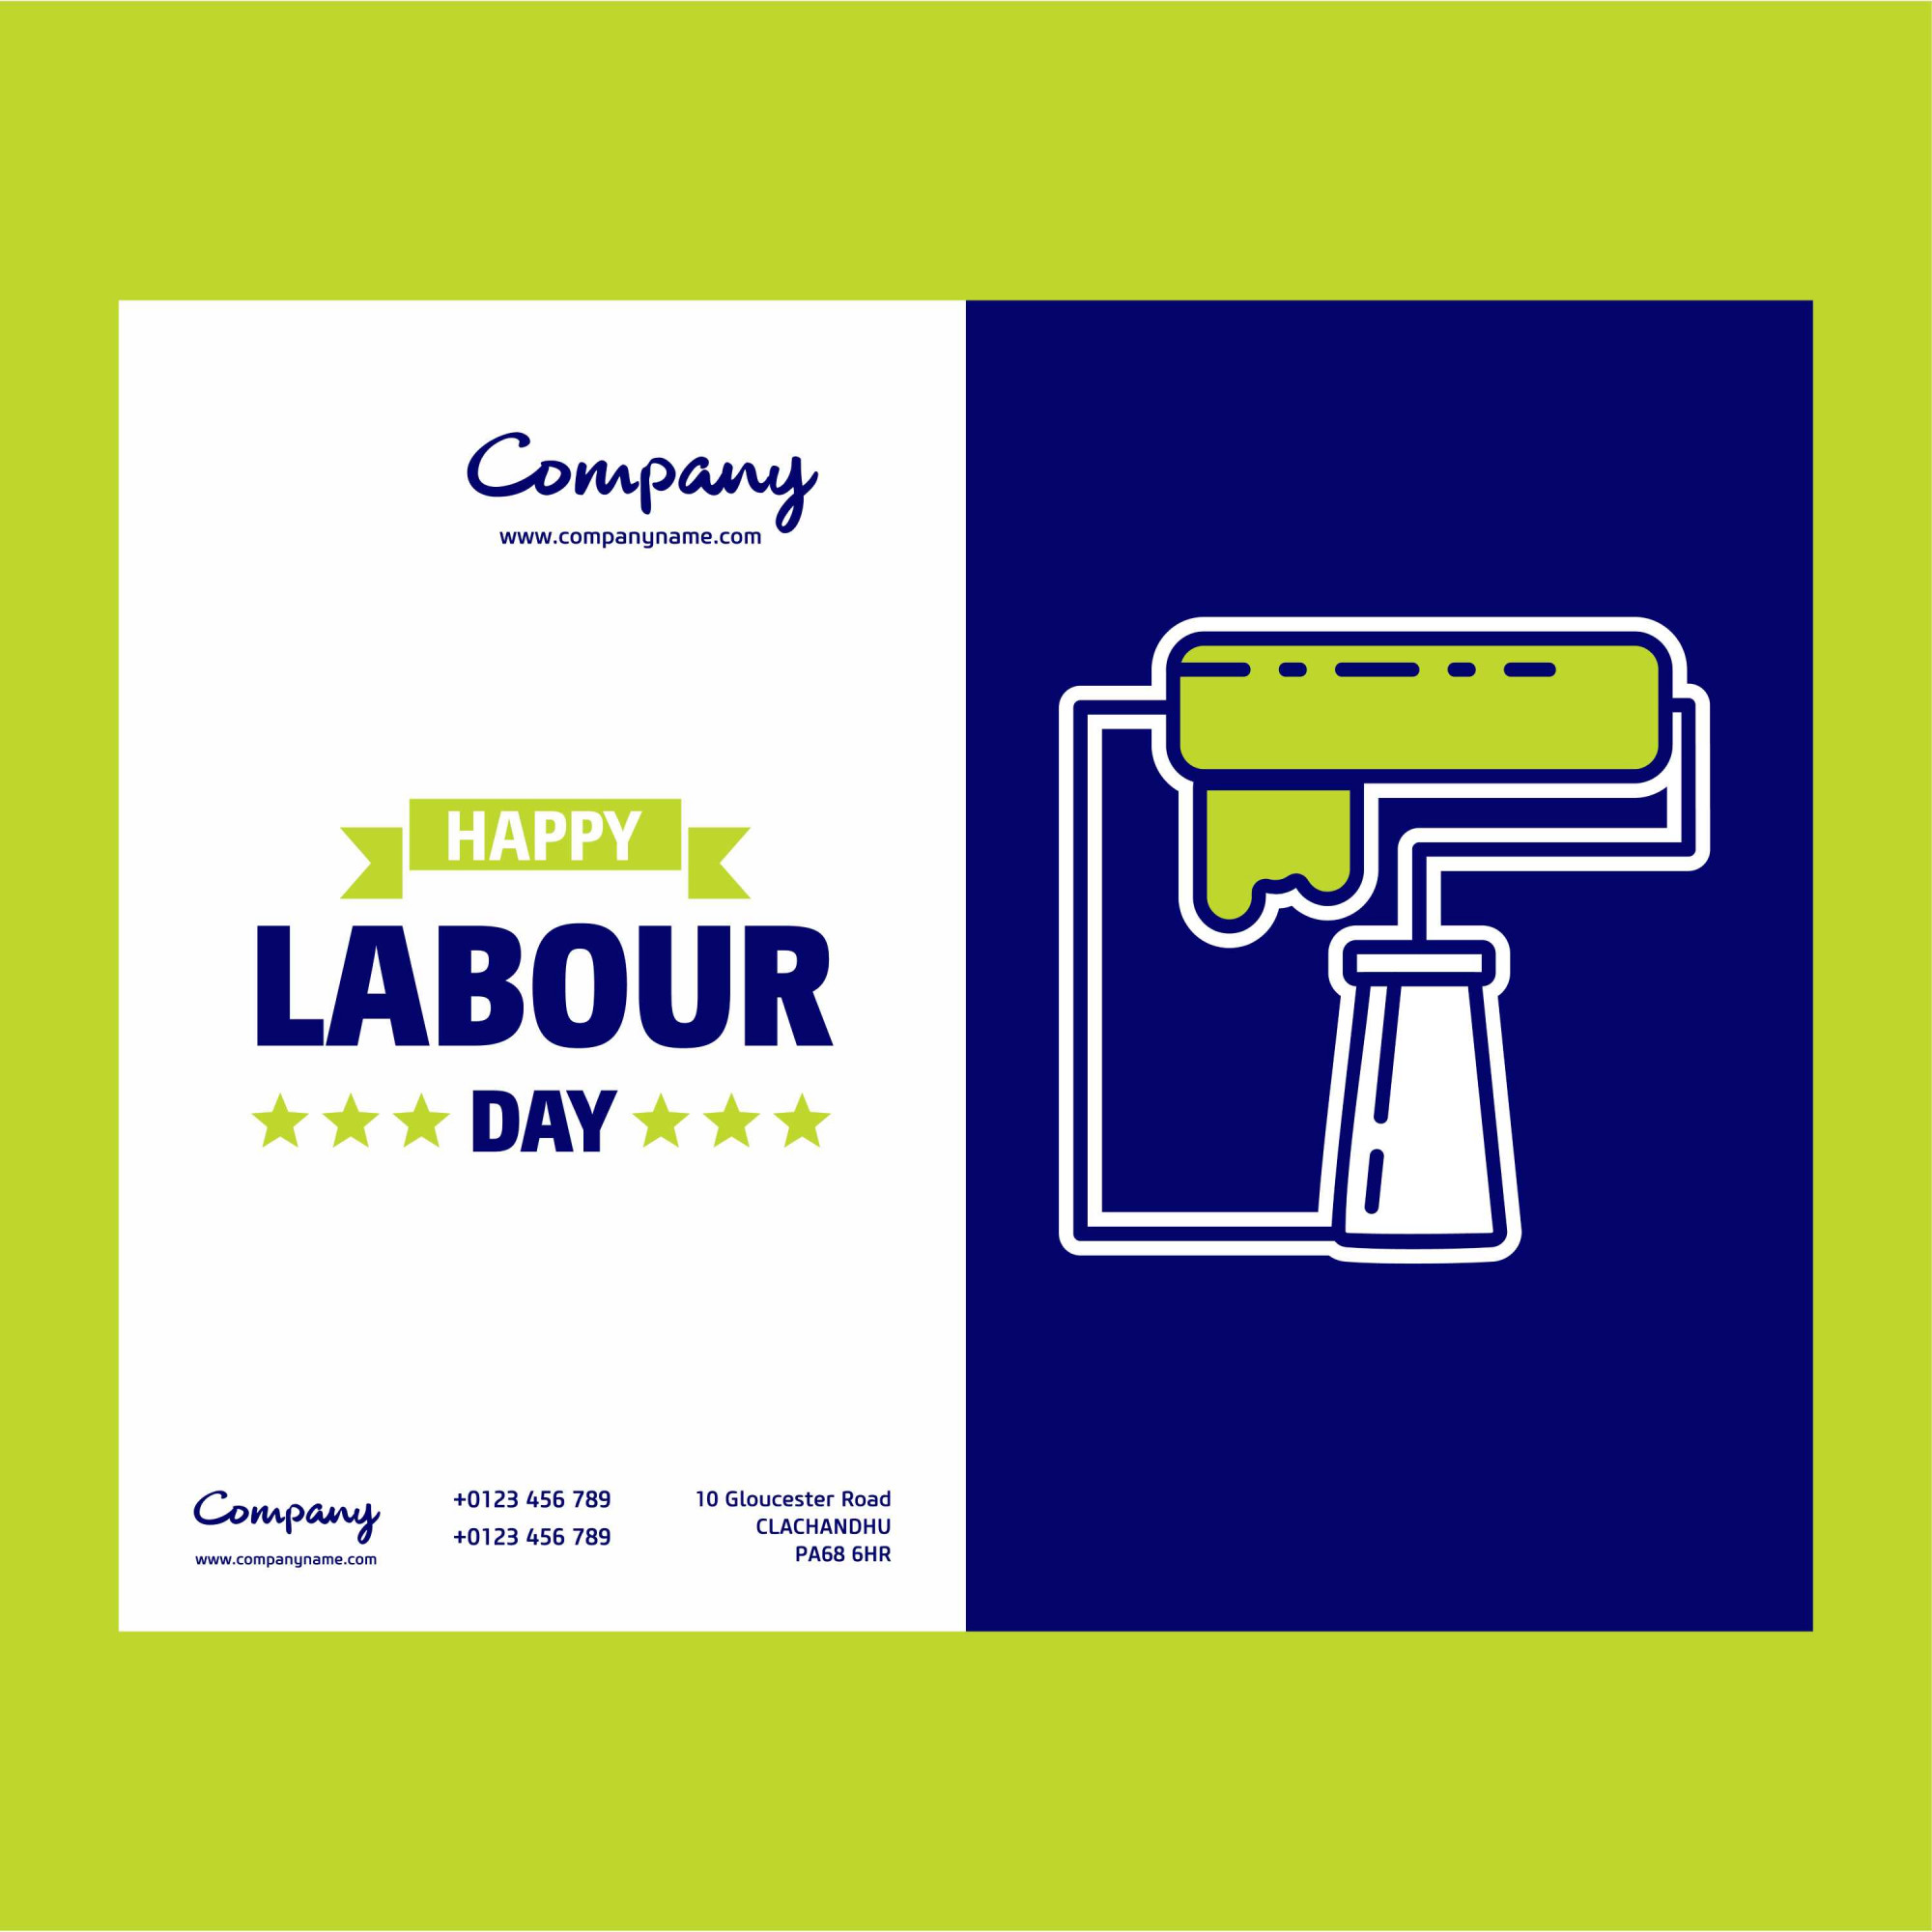 Happy Labour day design Paint Brush